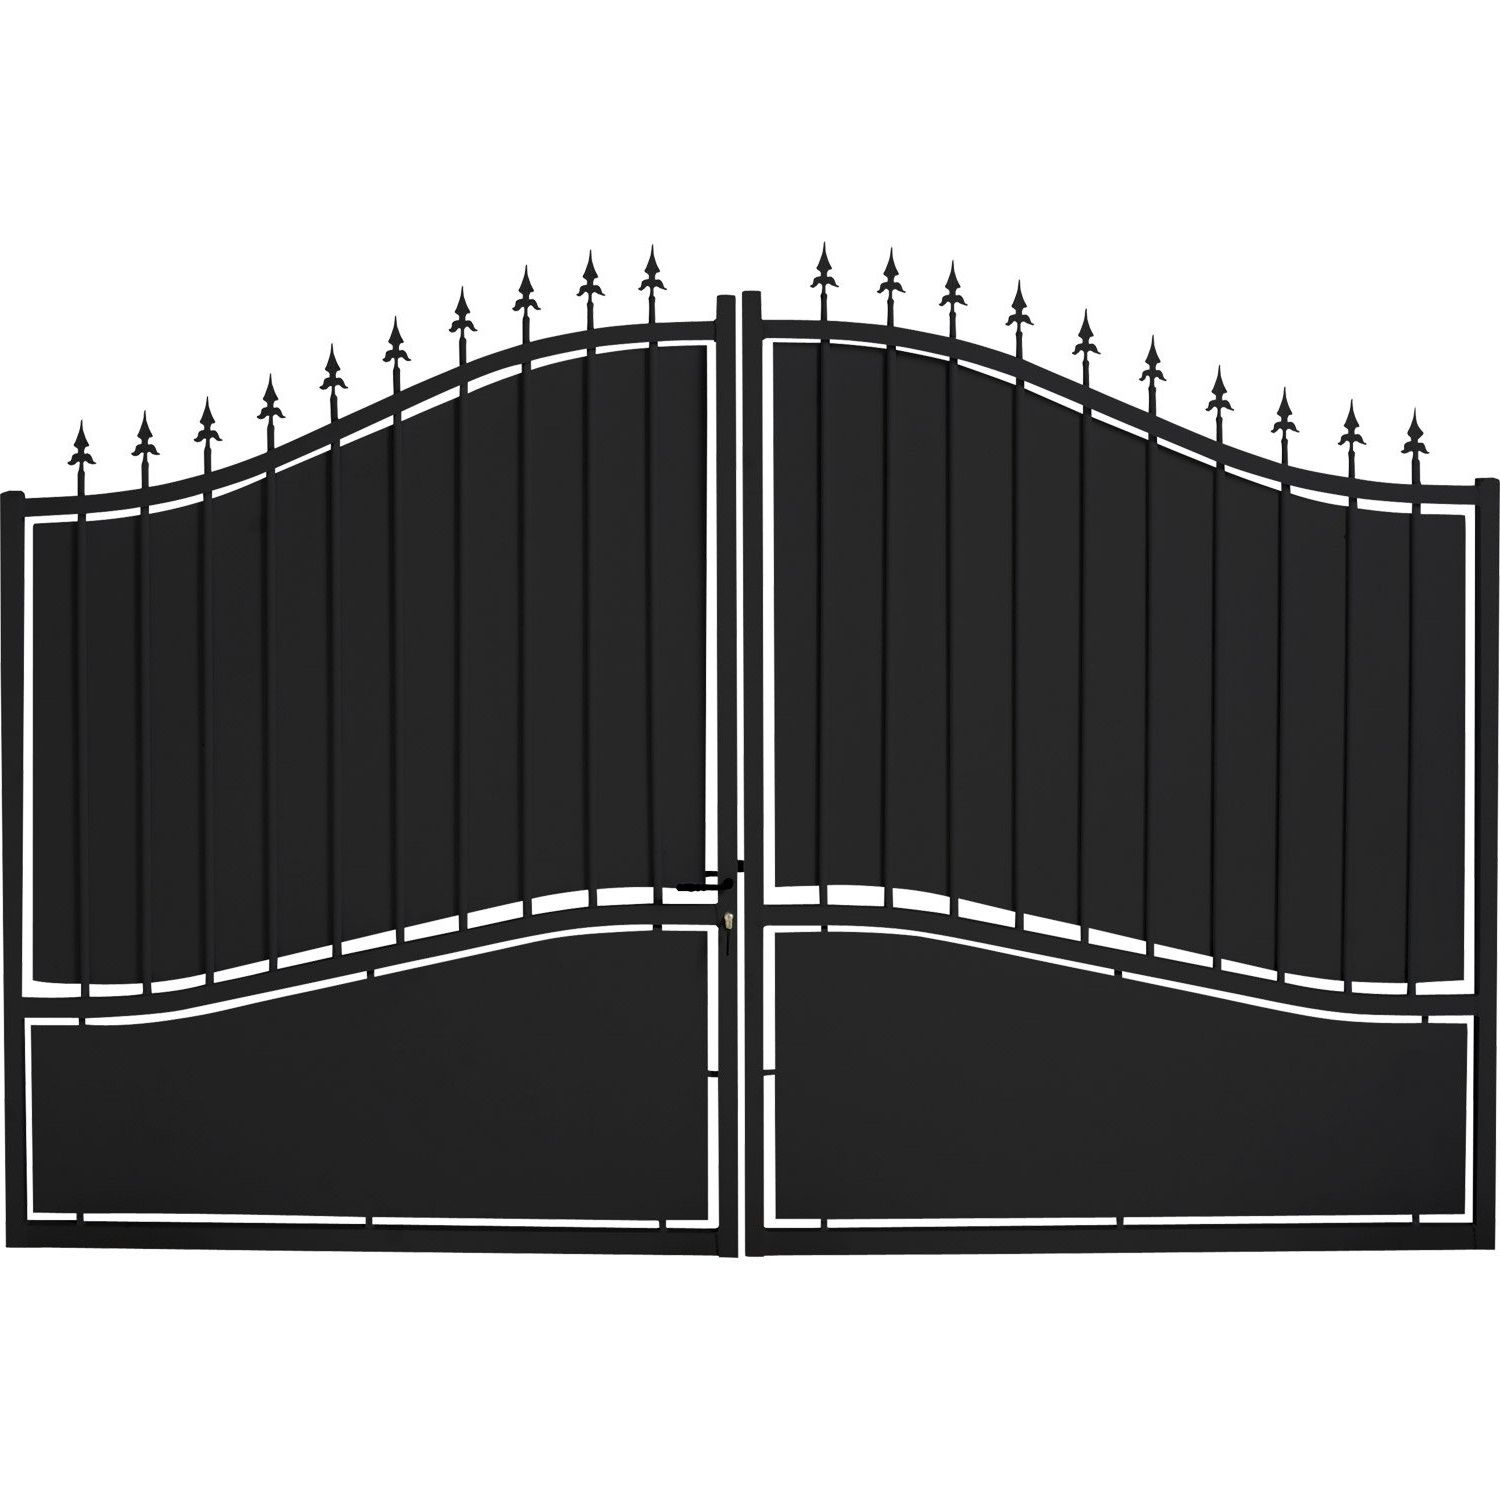 Portails Brico Depot Wrought Iron Driveway Gates Iron Gates Gate Design